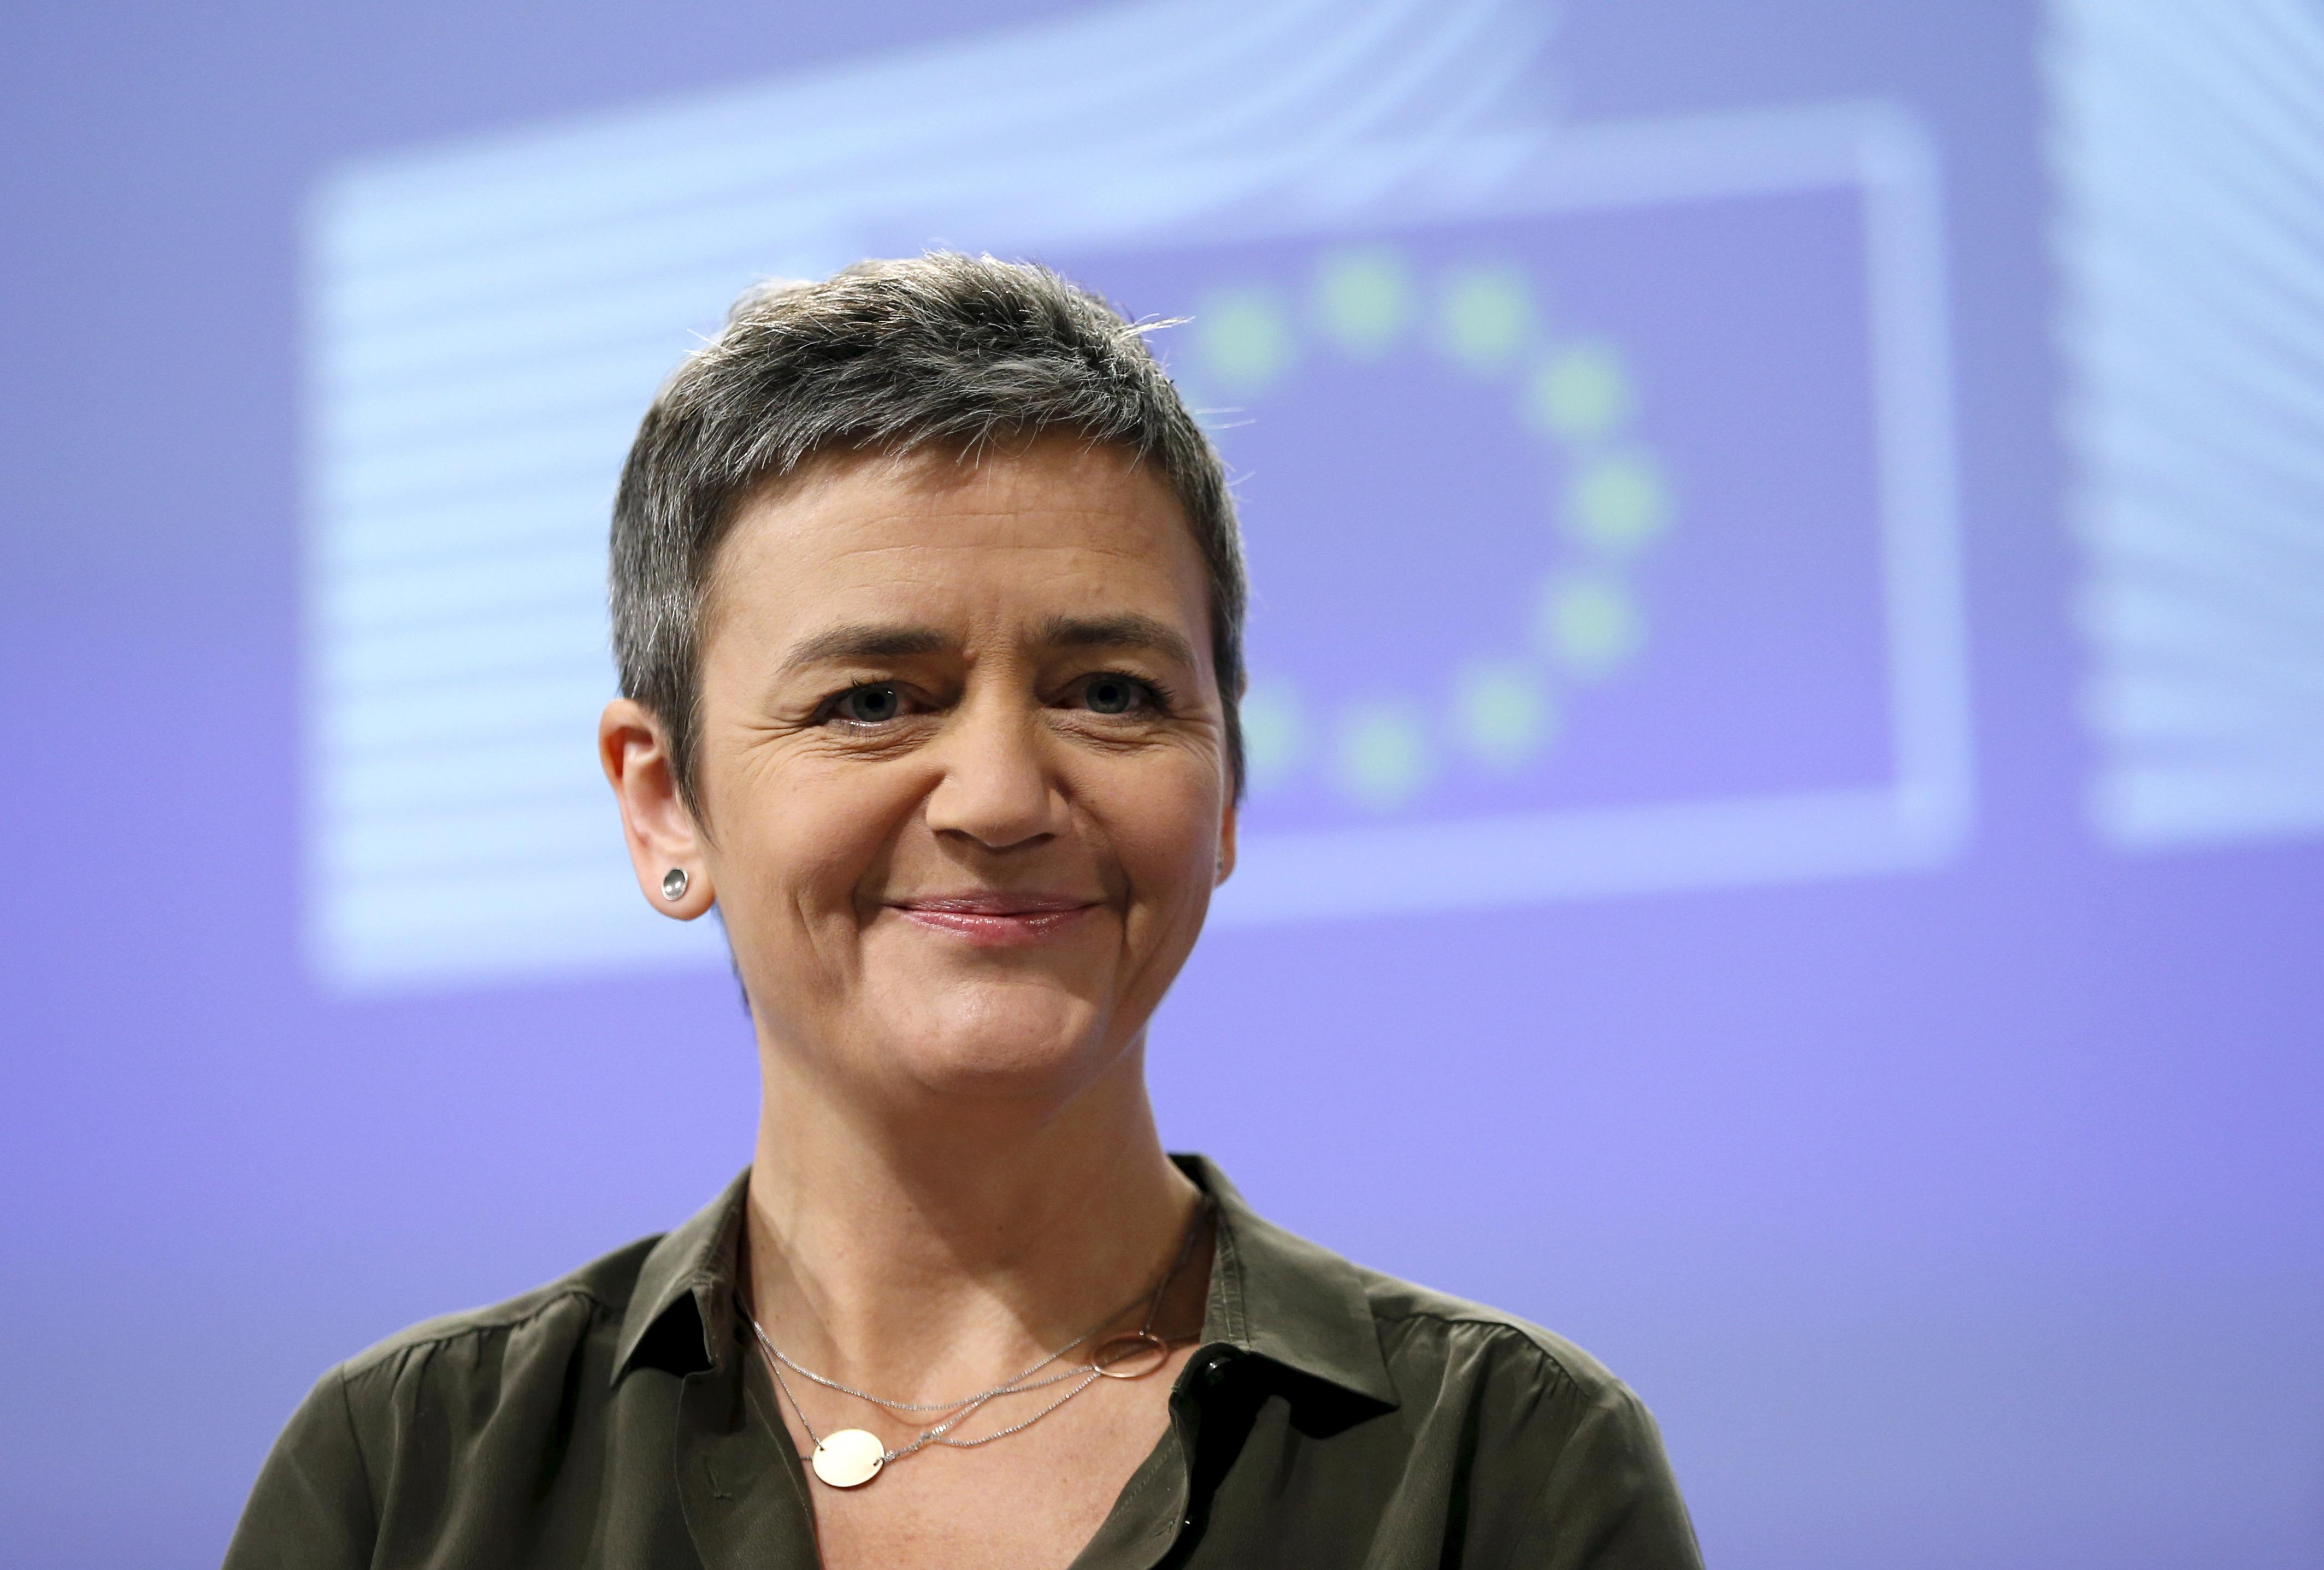 EU Antitrust Chief Margarethe Vestager